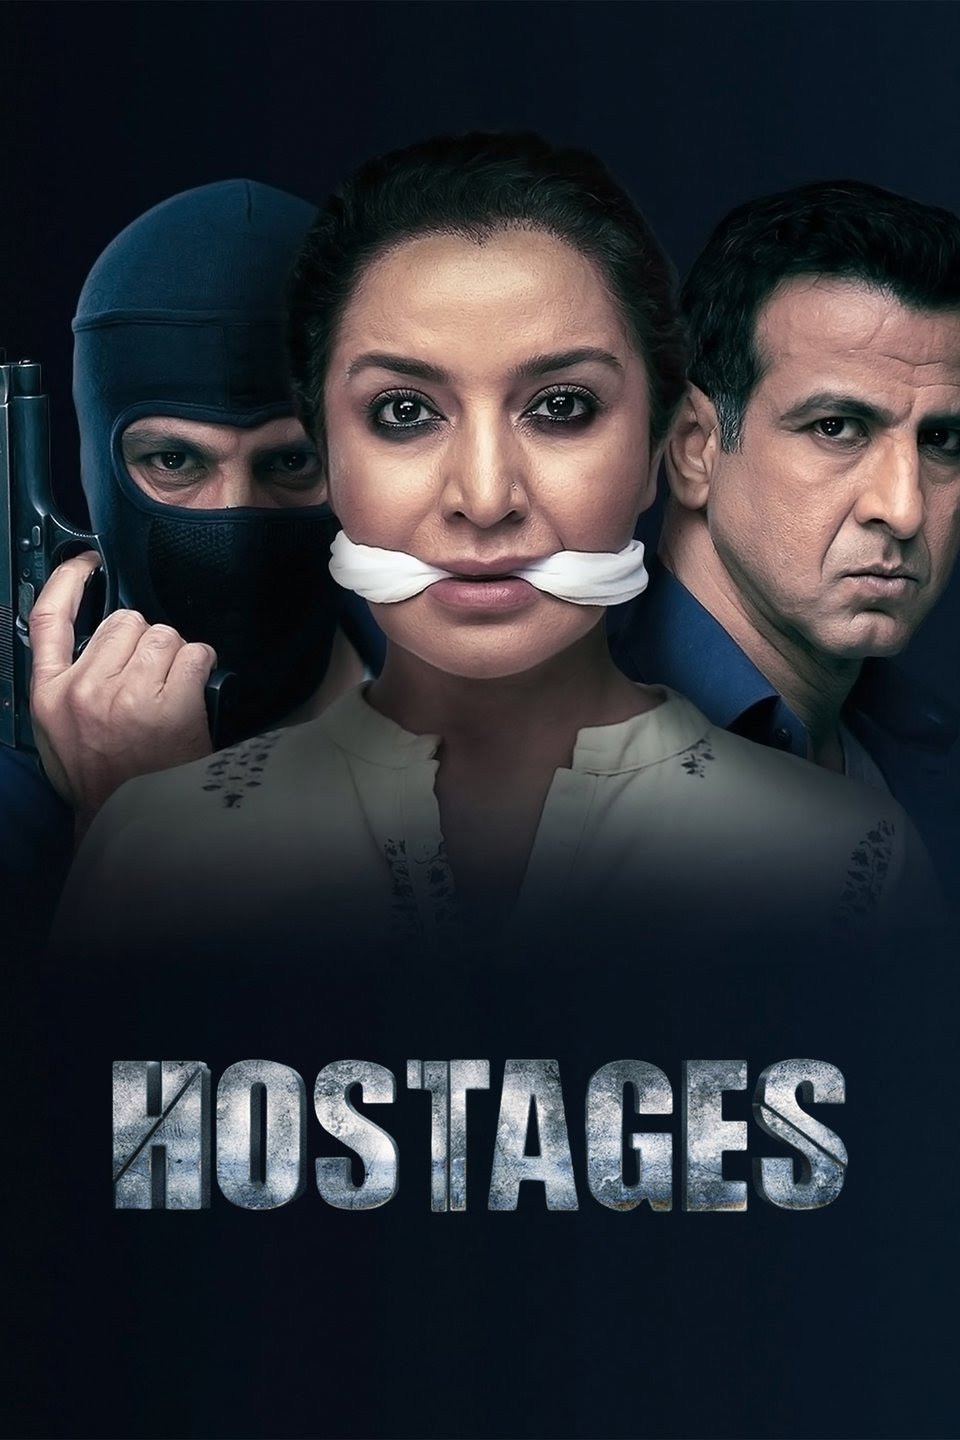 Hostages S01 (2019) Hindi Hotstar Specials Complete Web Series 480p | 720p WEB-DL